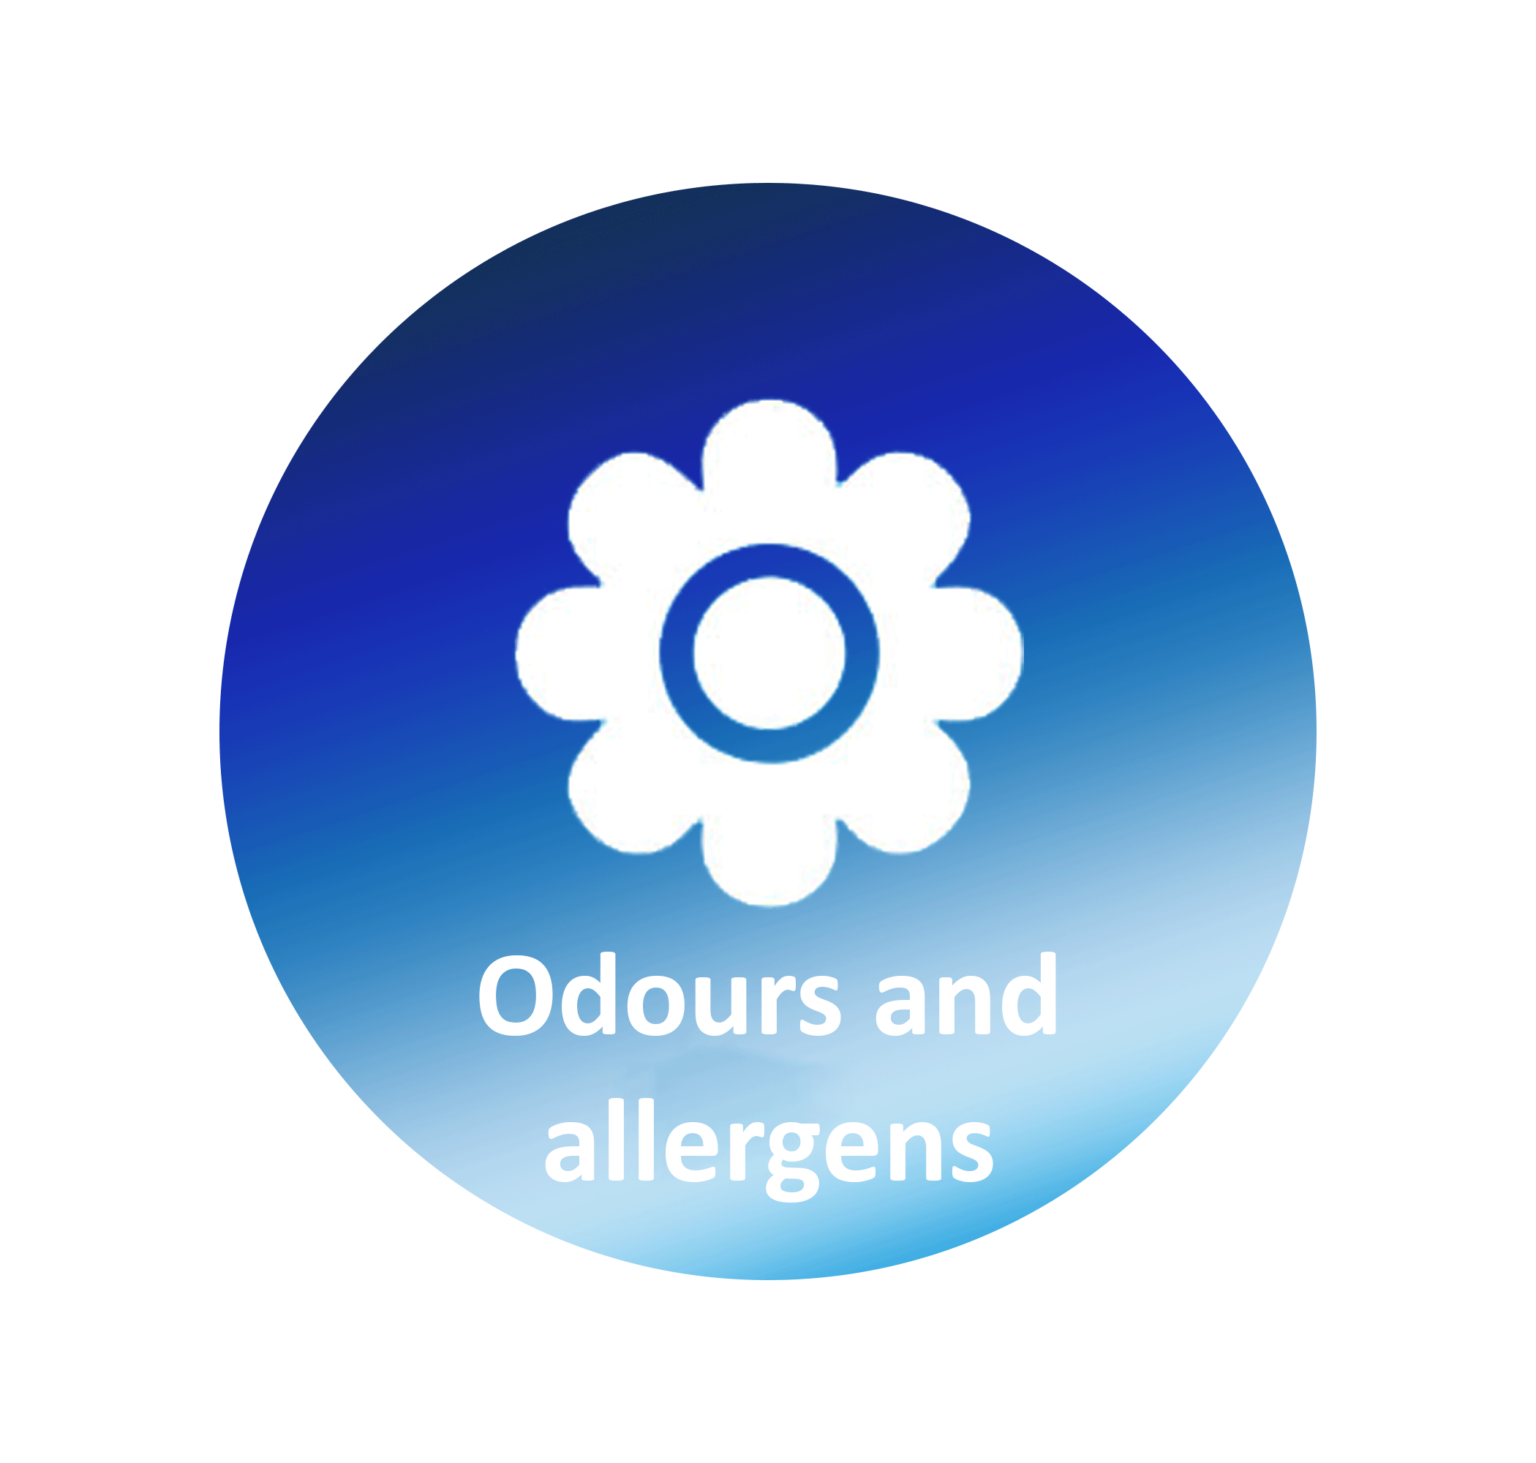 Odours and allergens